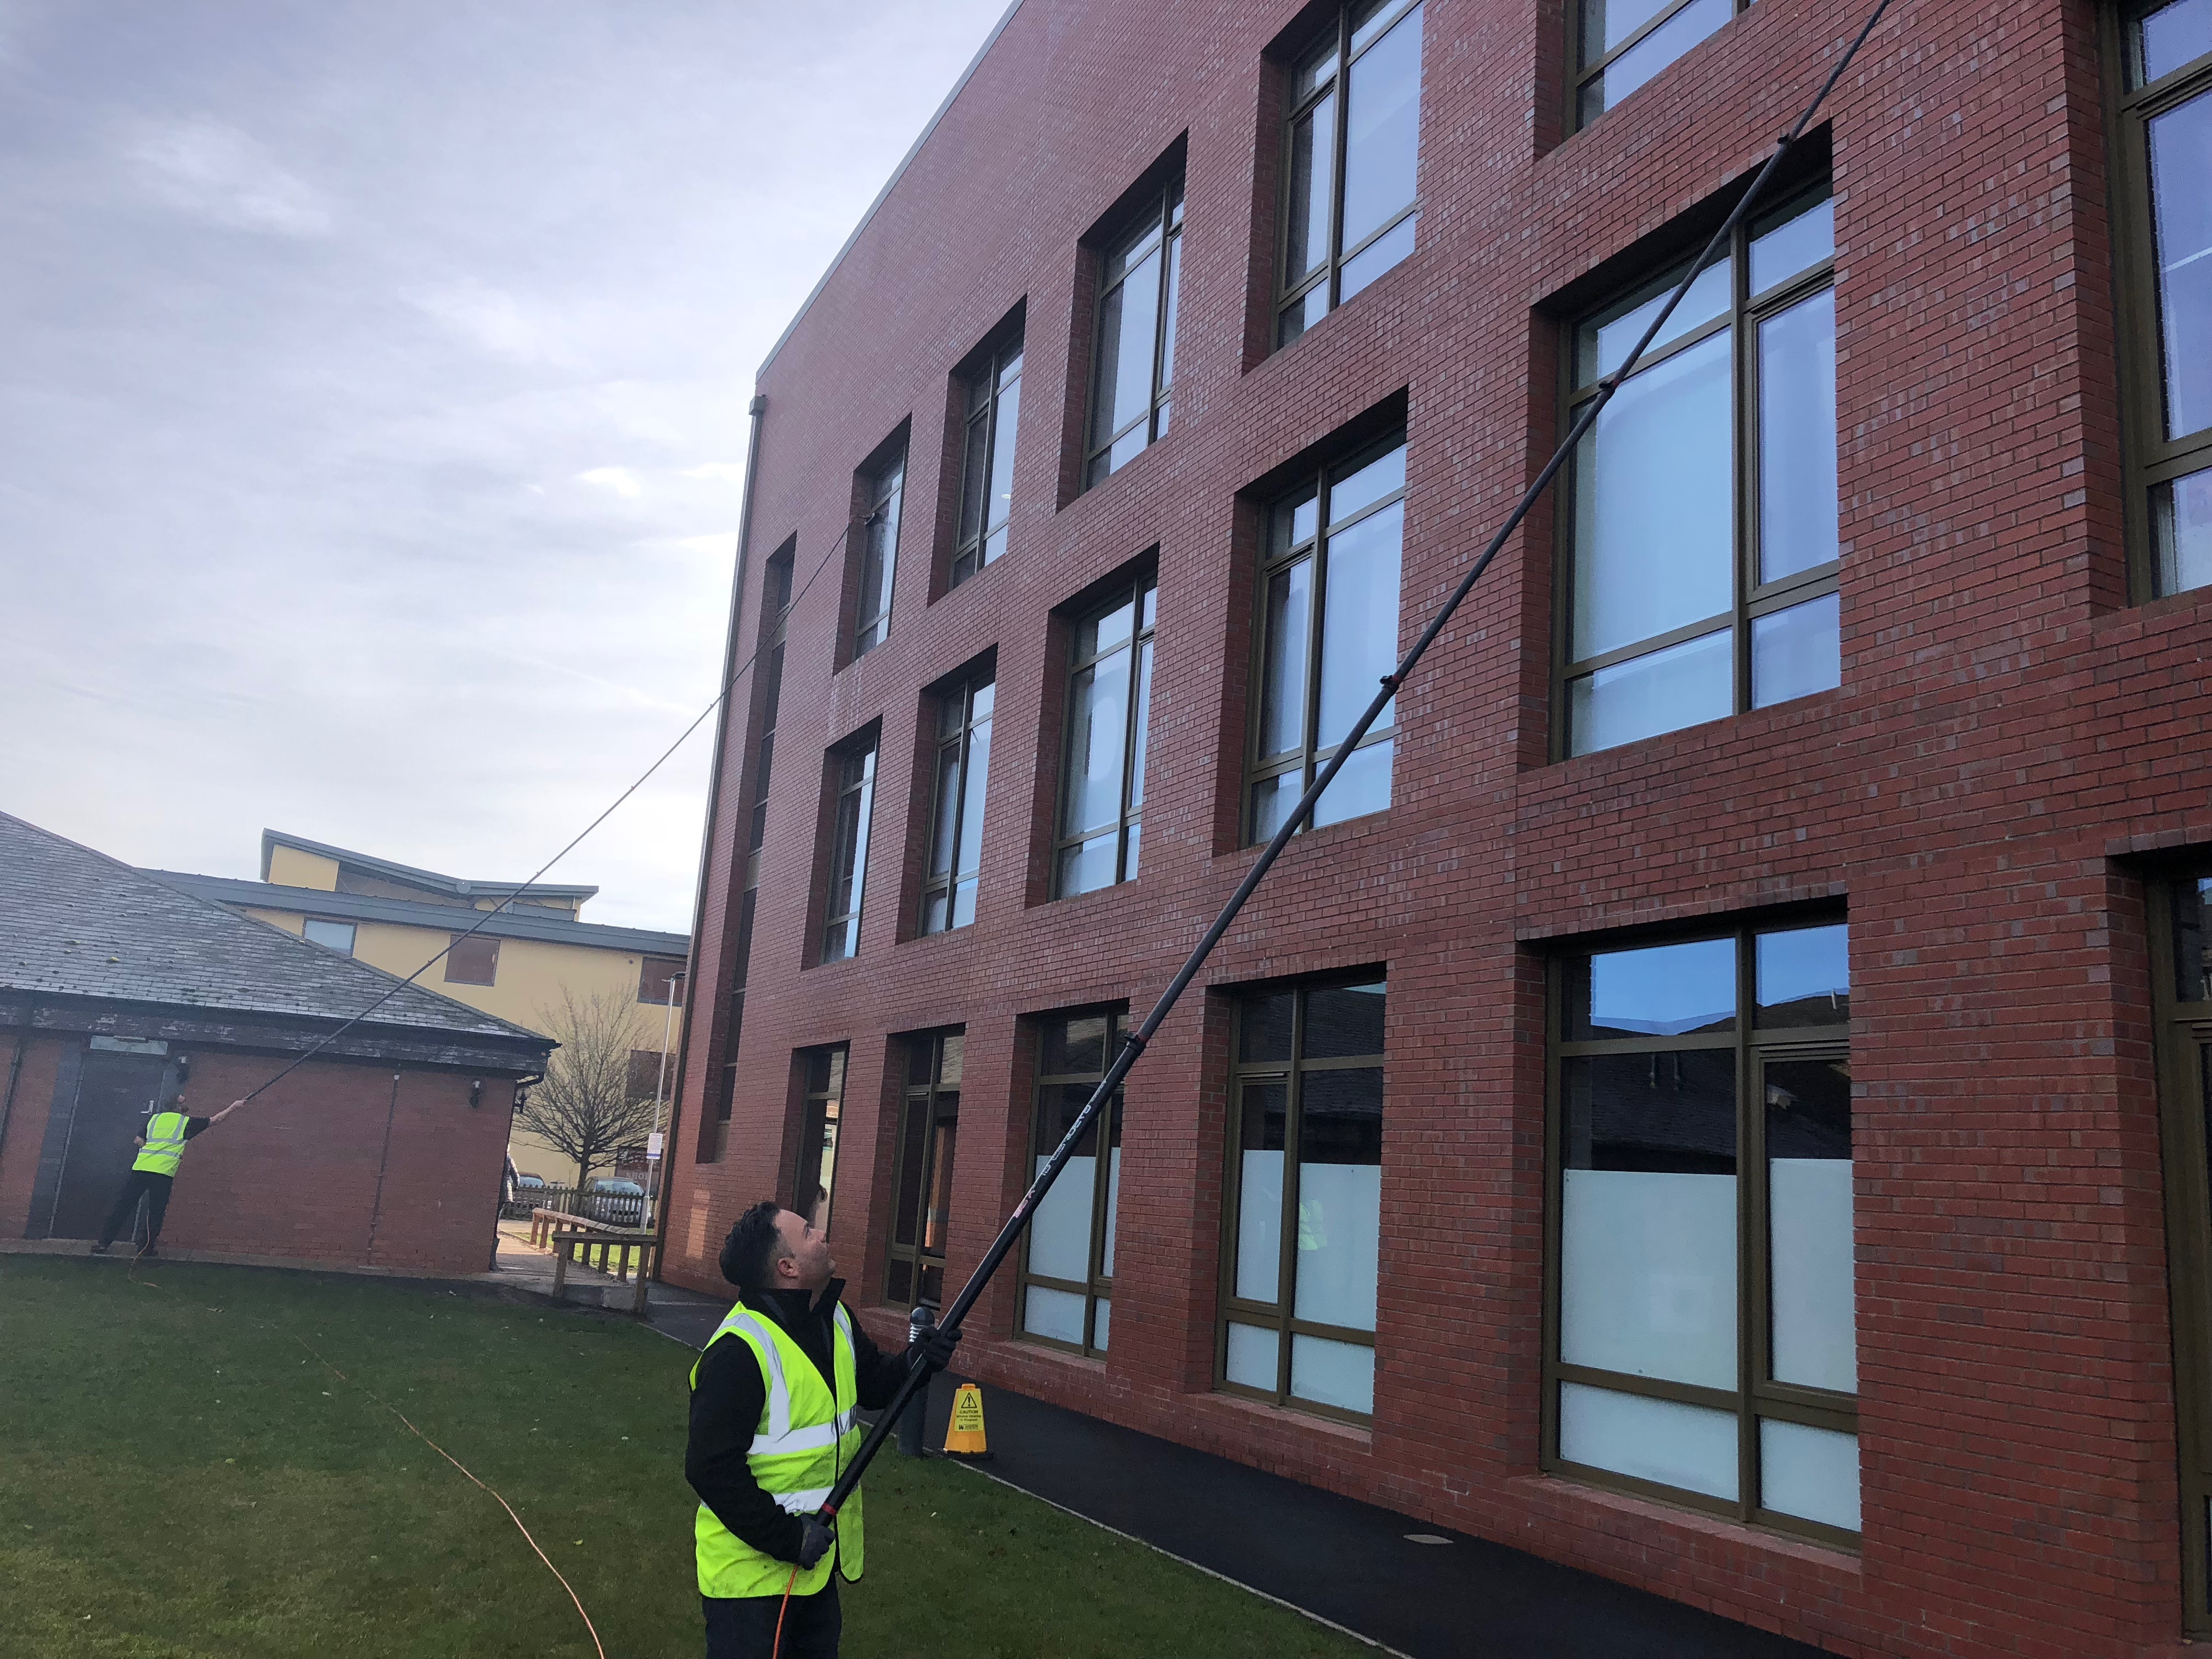 commercial window cleaning,